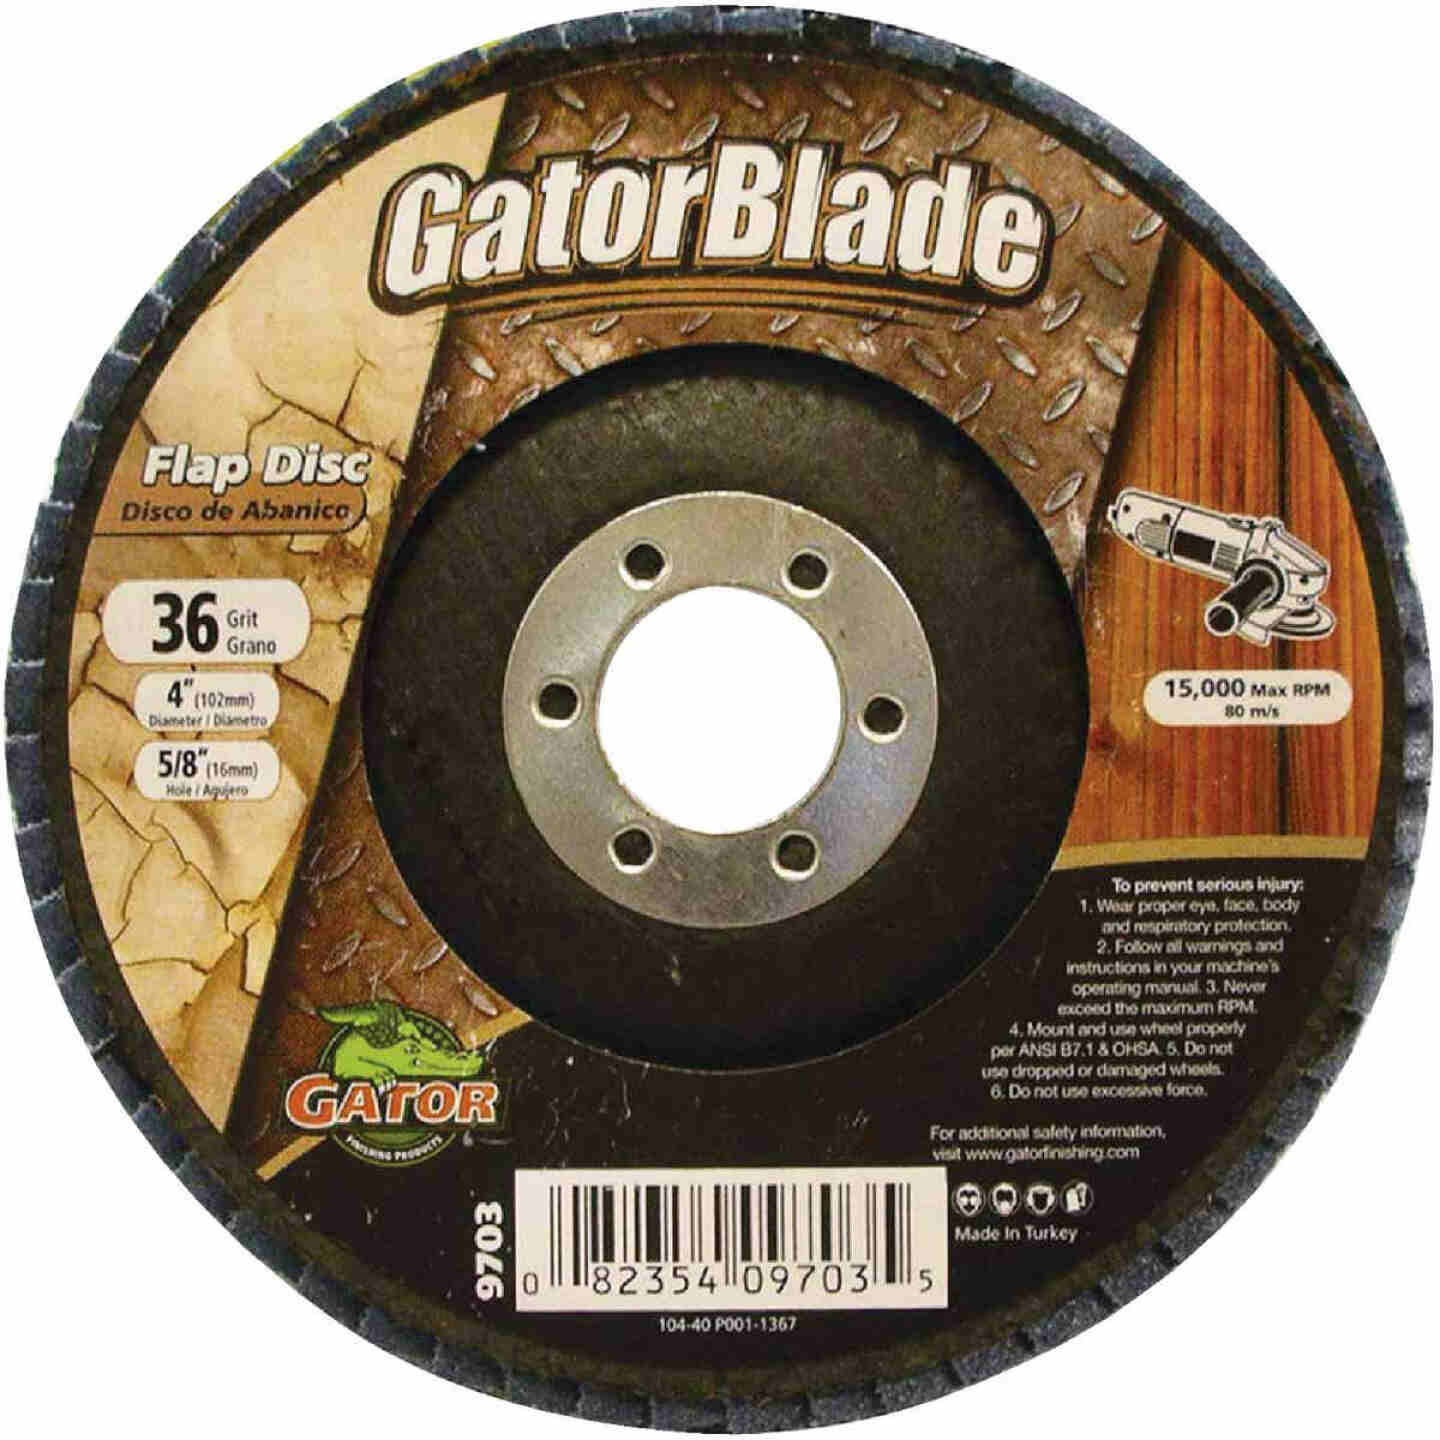 Gator Blade 4 In. x 5/8 In. 36-Grit Type 29 Angle Grinder Flap Disc Image 1